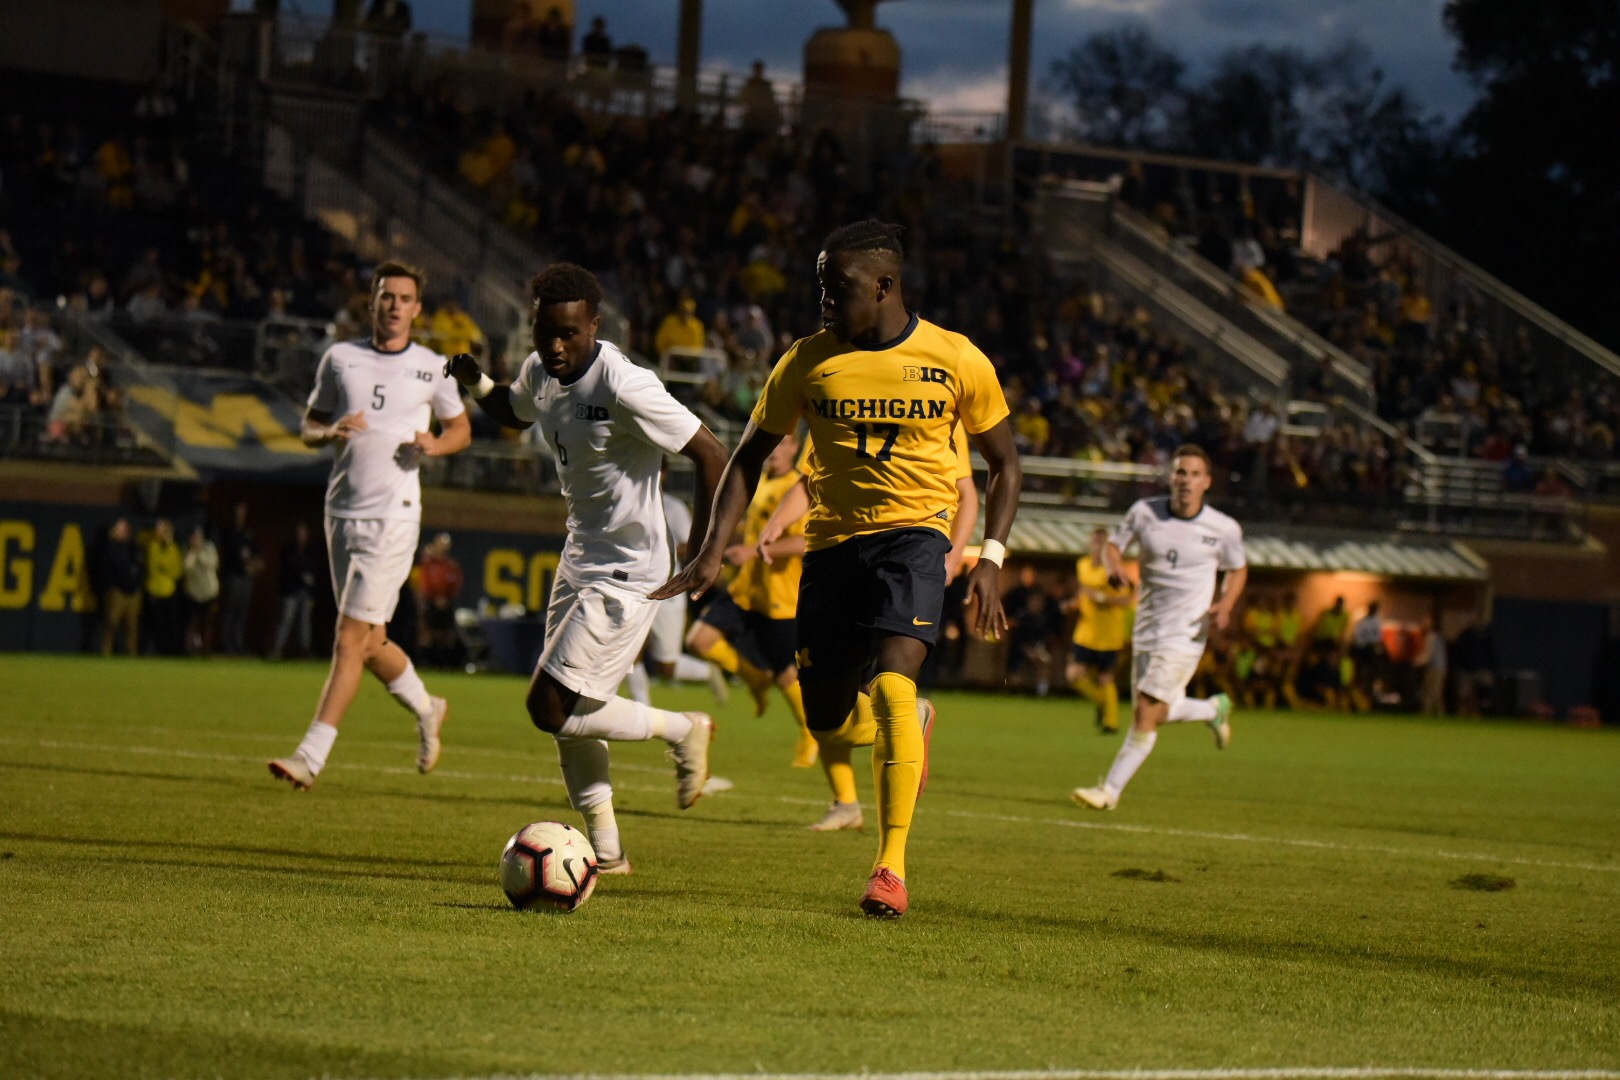 Sosa Emovon's first point of his Michigan career came in the 43rd minute with an assist.